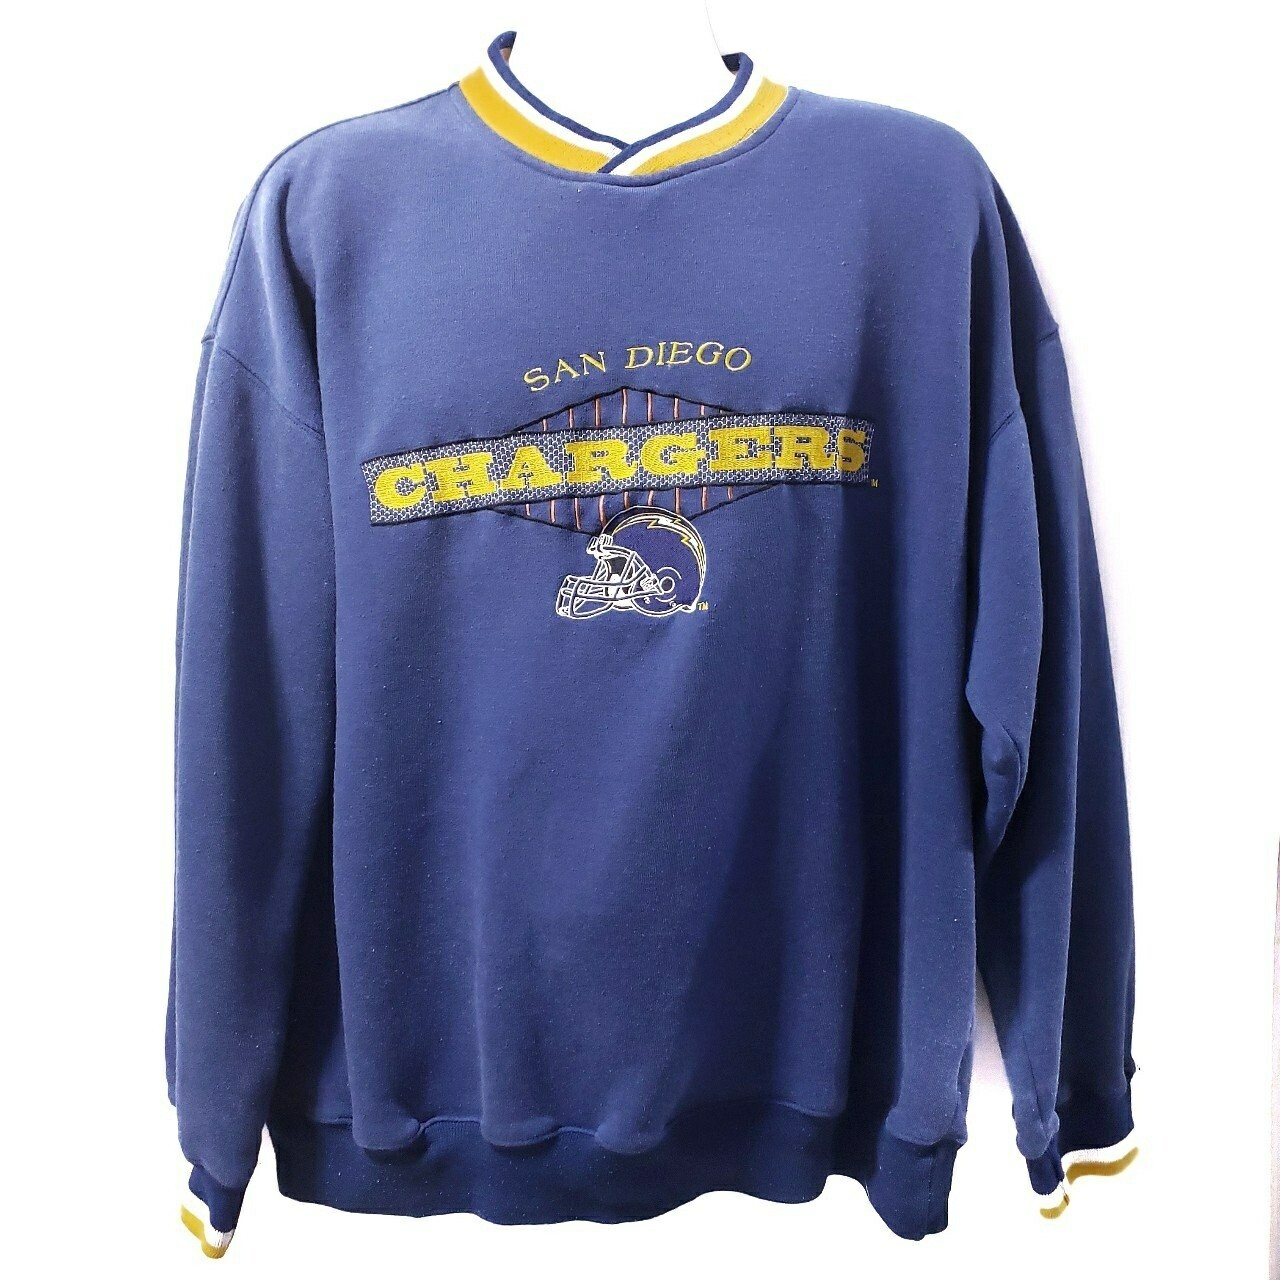 San Diego Chargers Crew Neck